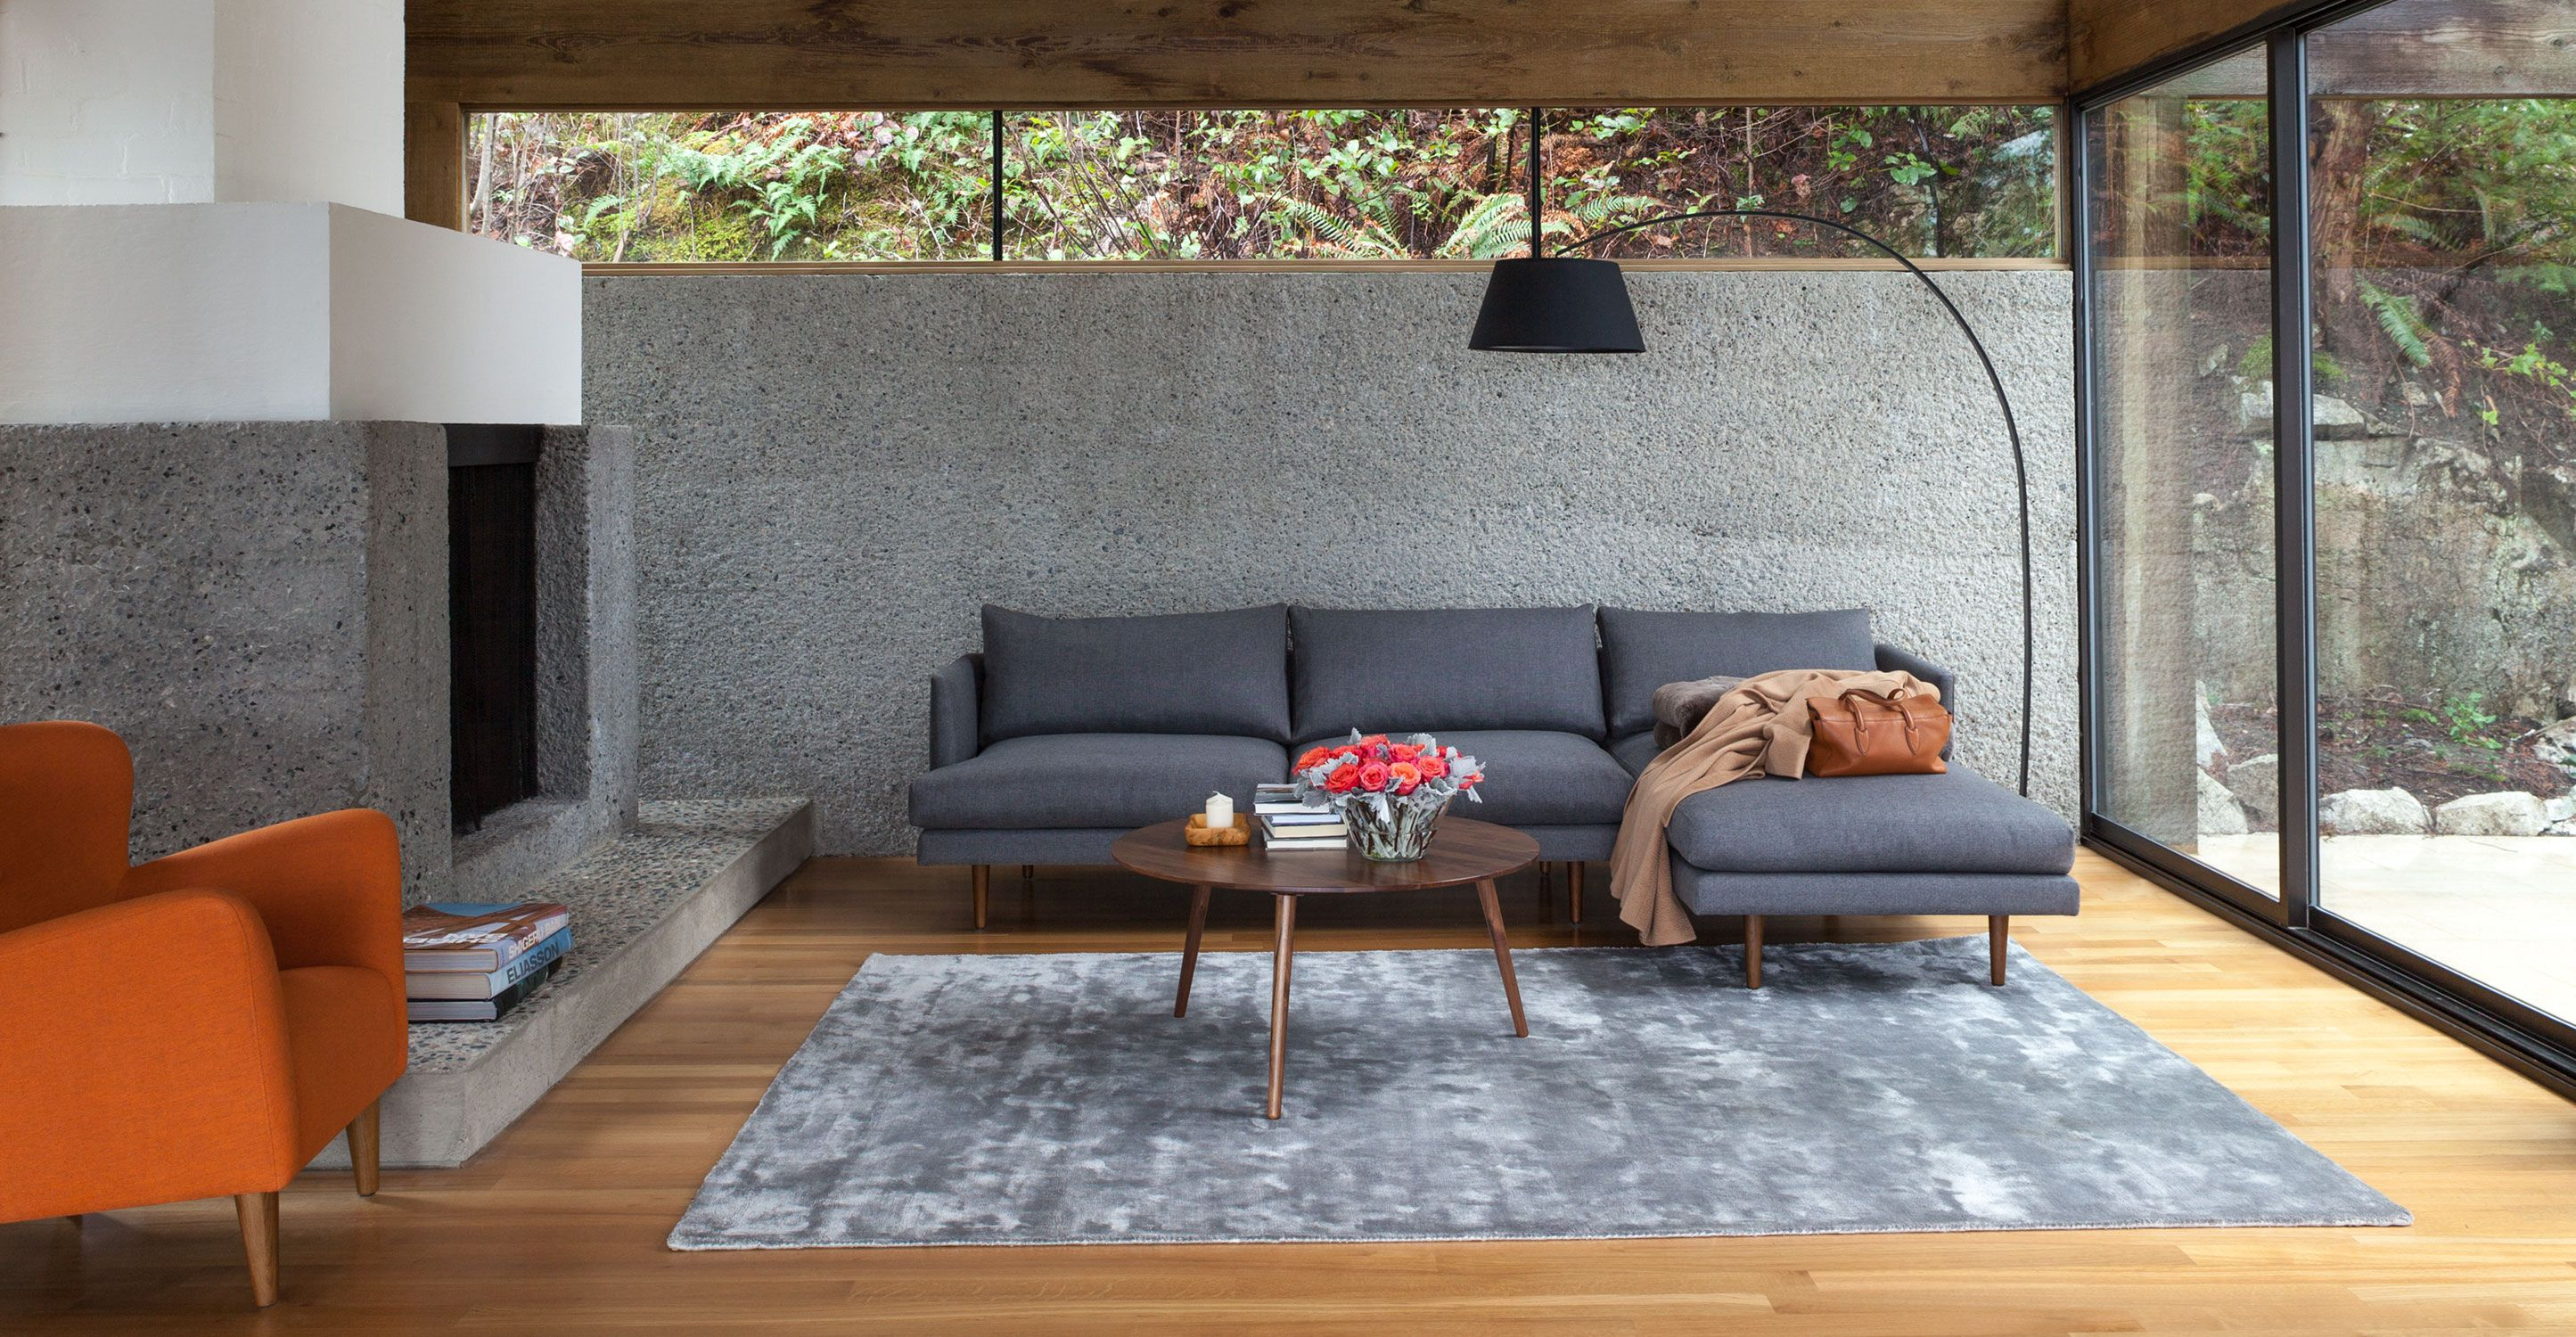 Burrard Graphite Gray Left Sectional Sofa Sectionals Article Modern Mid Century And S Mid Century Modern Sectional Sofa Furniture Scandinavian Furniture